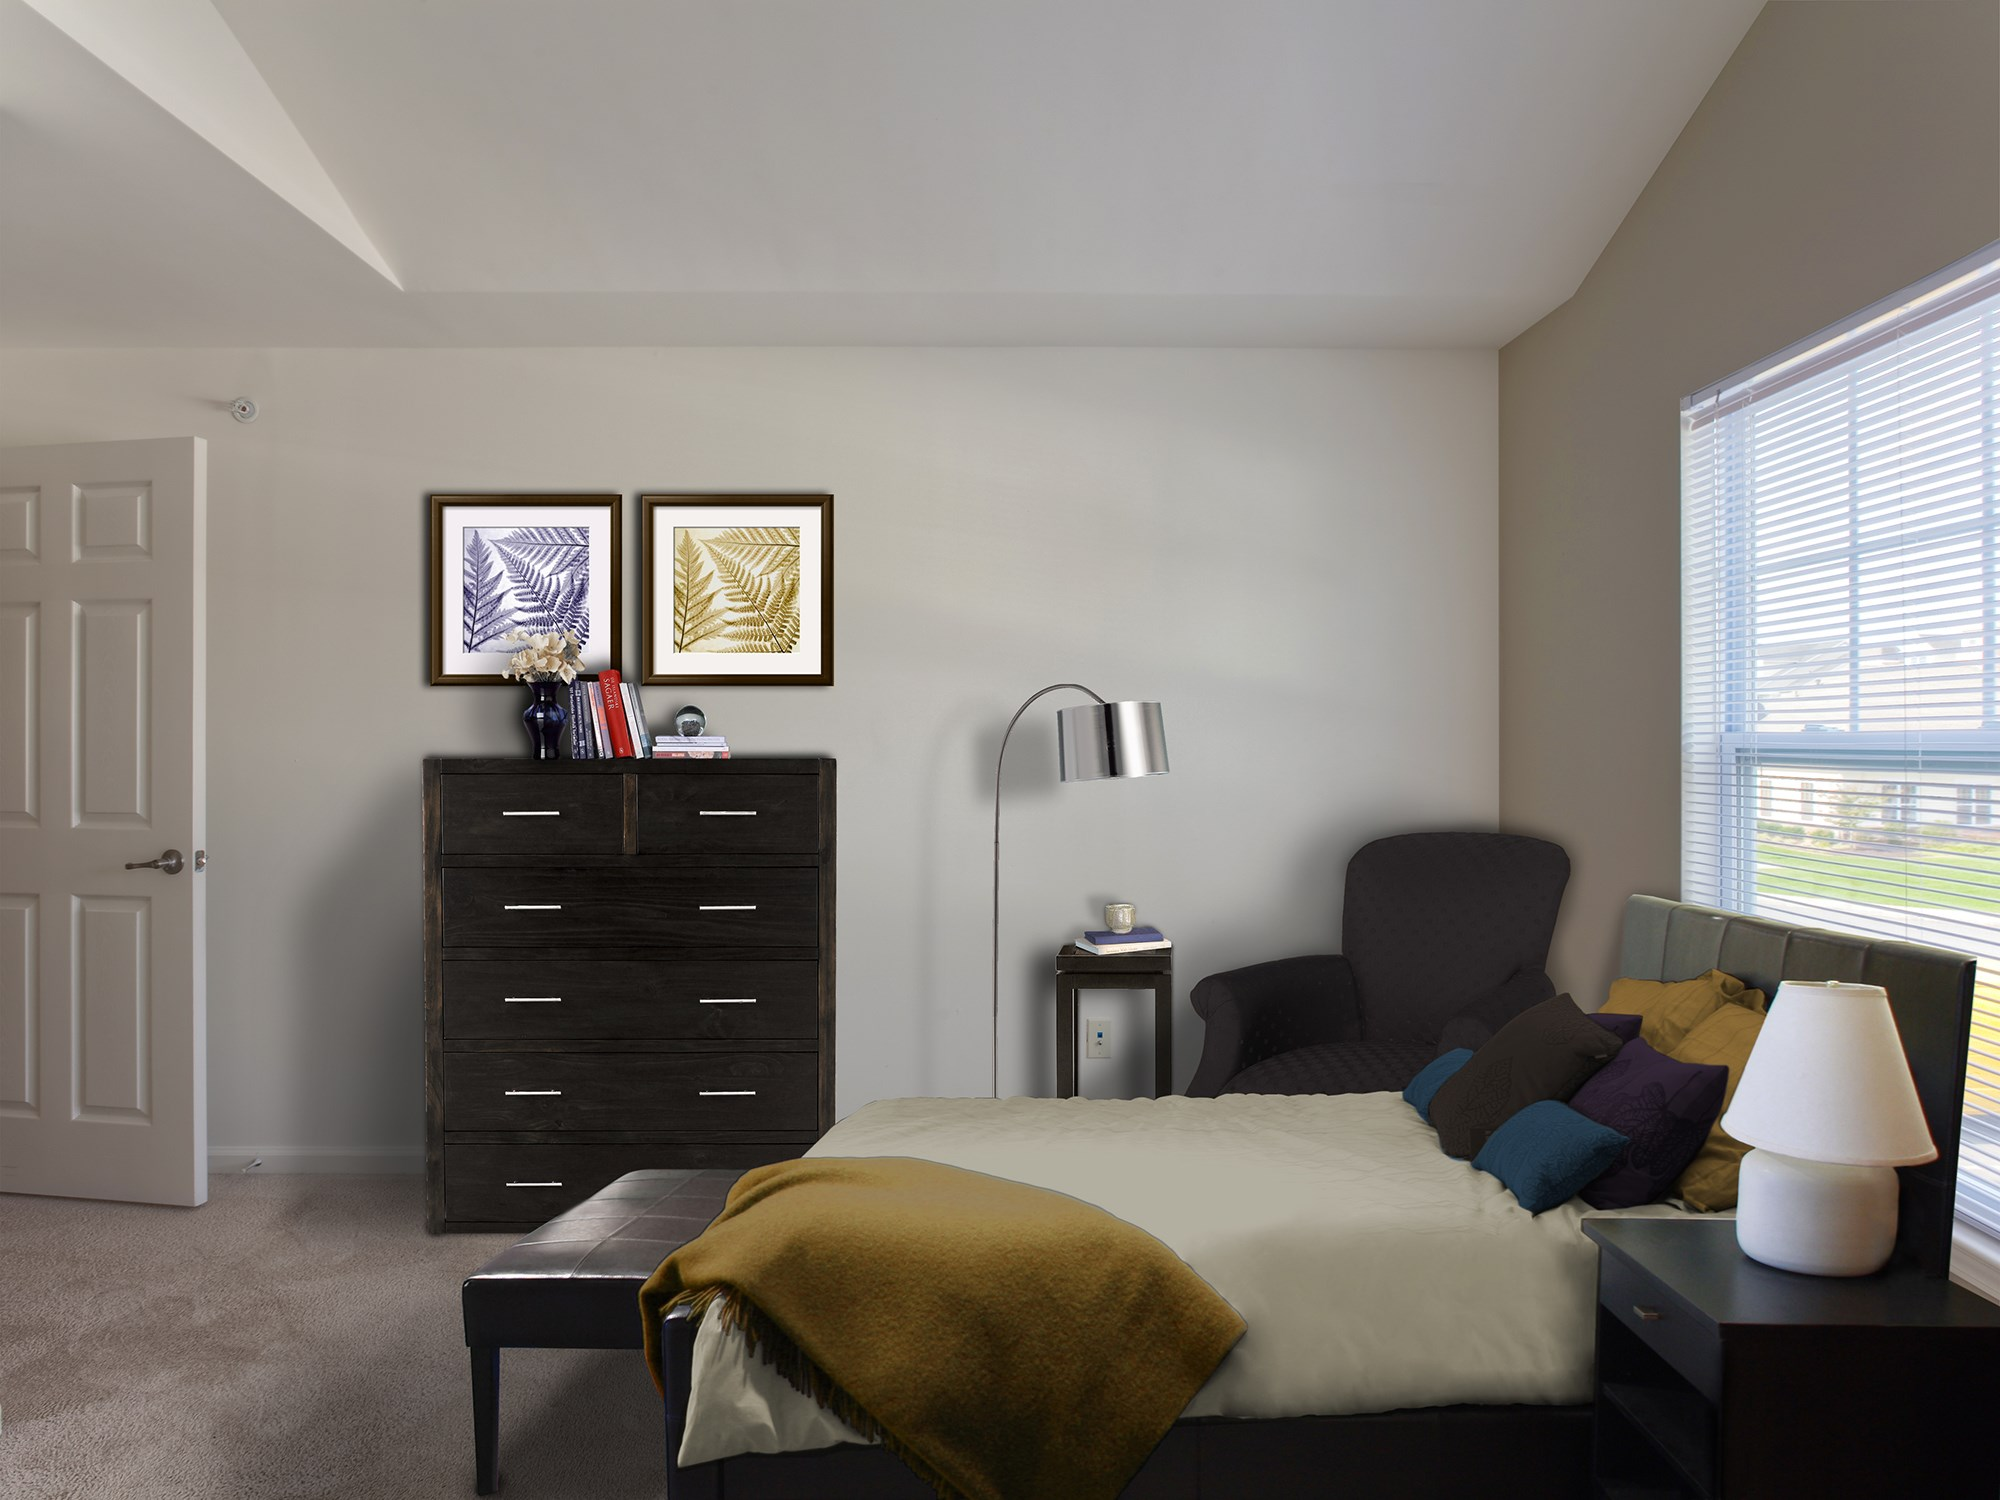 Bedroom at Enclave at Charles Pond Apartments in Coram, NY